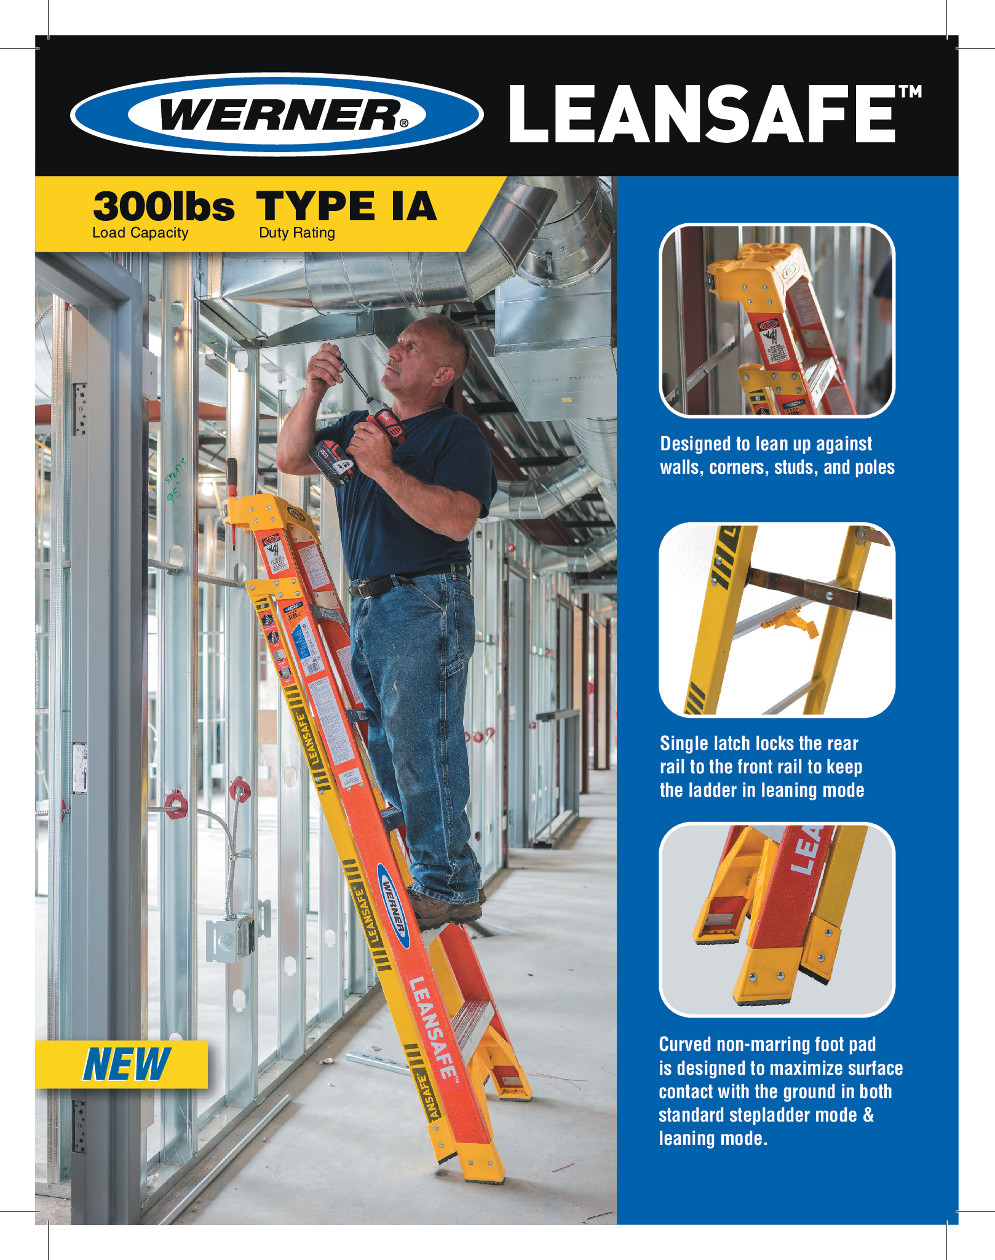 gm7522-l6200-leansafe-ladder-sellsheet-hires-1260x1260.jpg